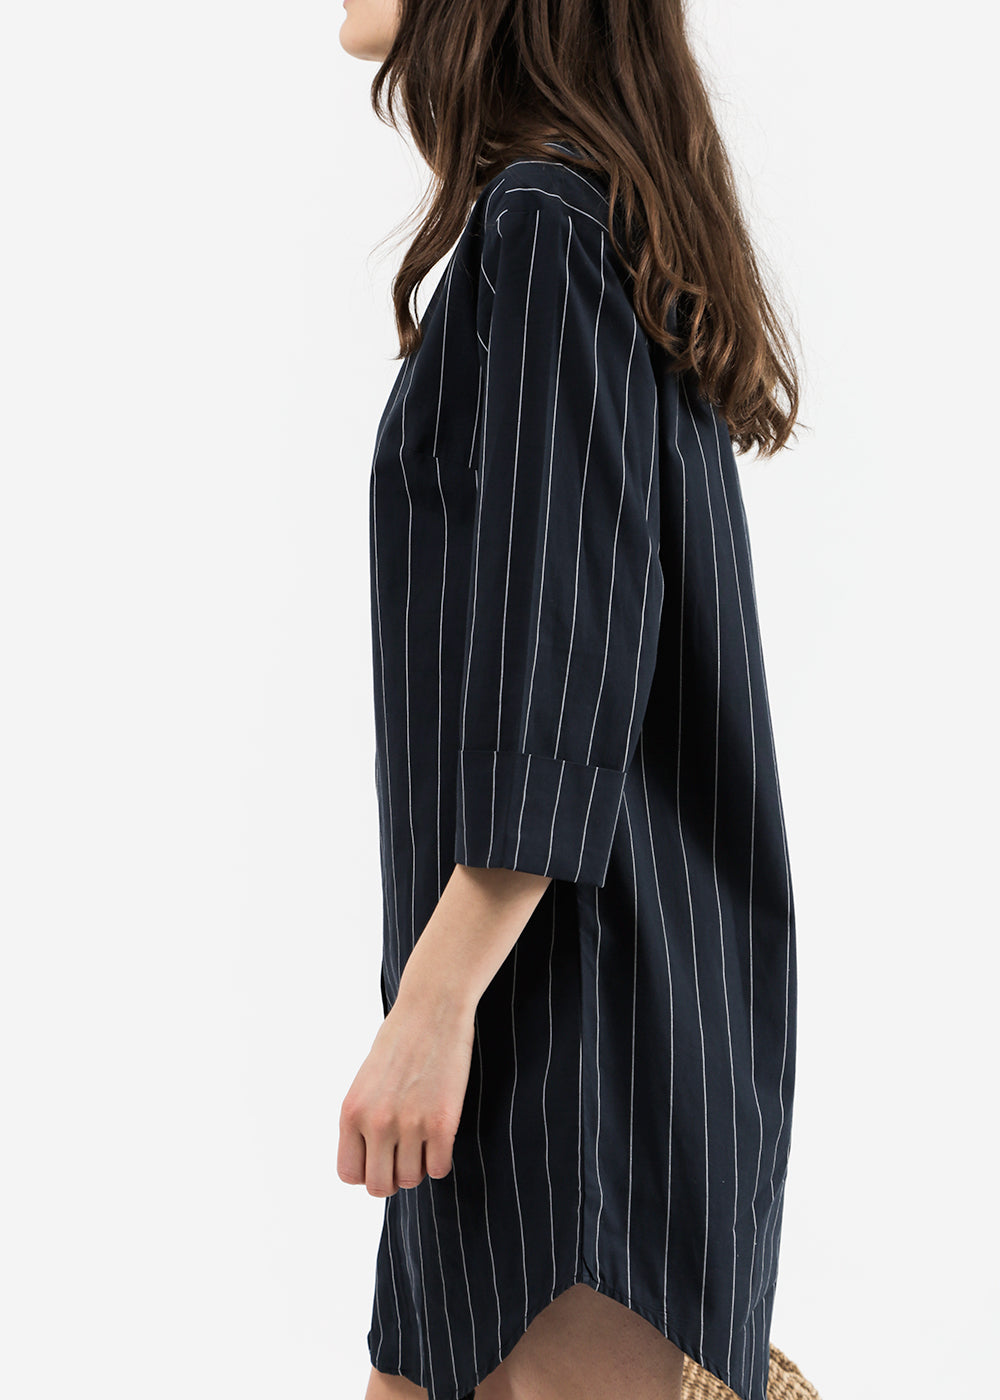 Kowtow Mirror Dress — New Classics Studios